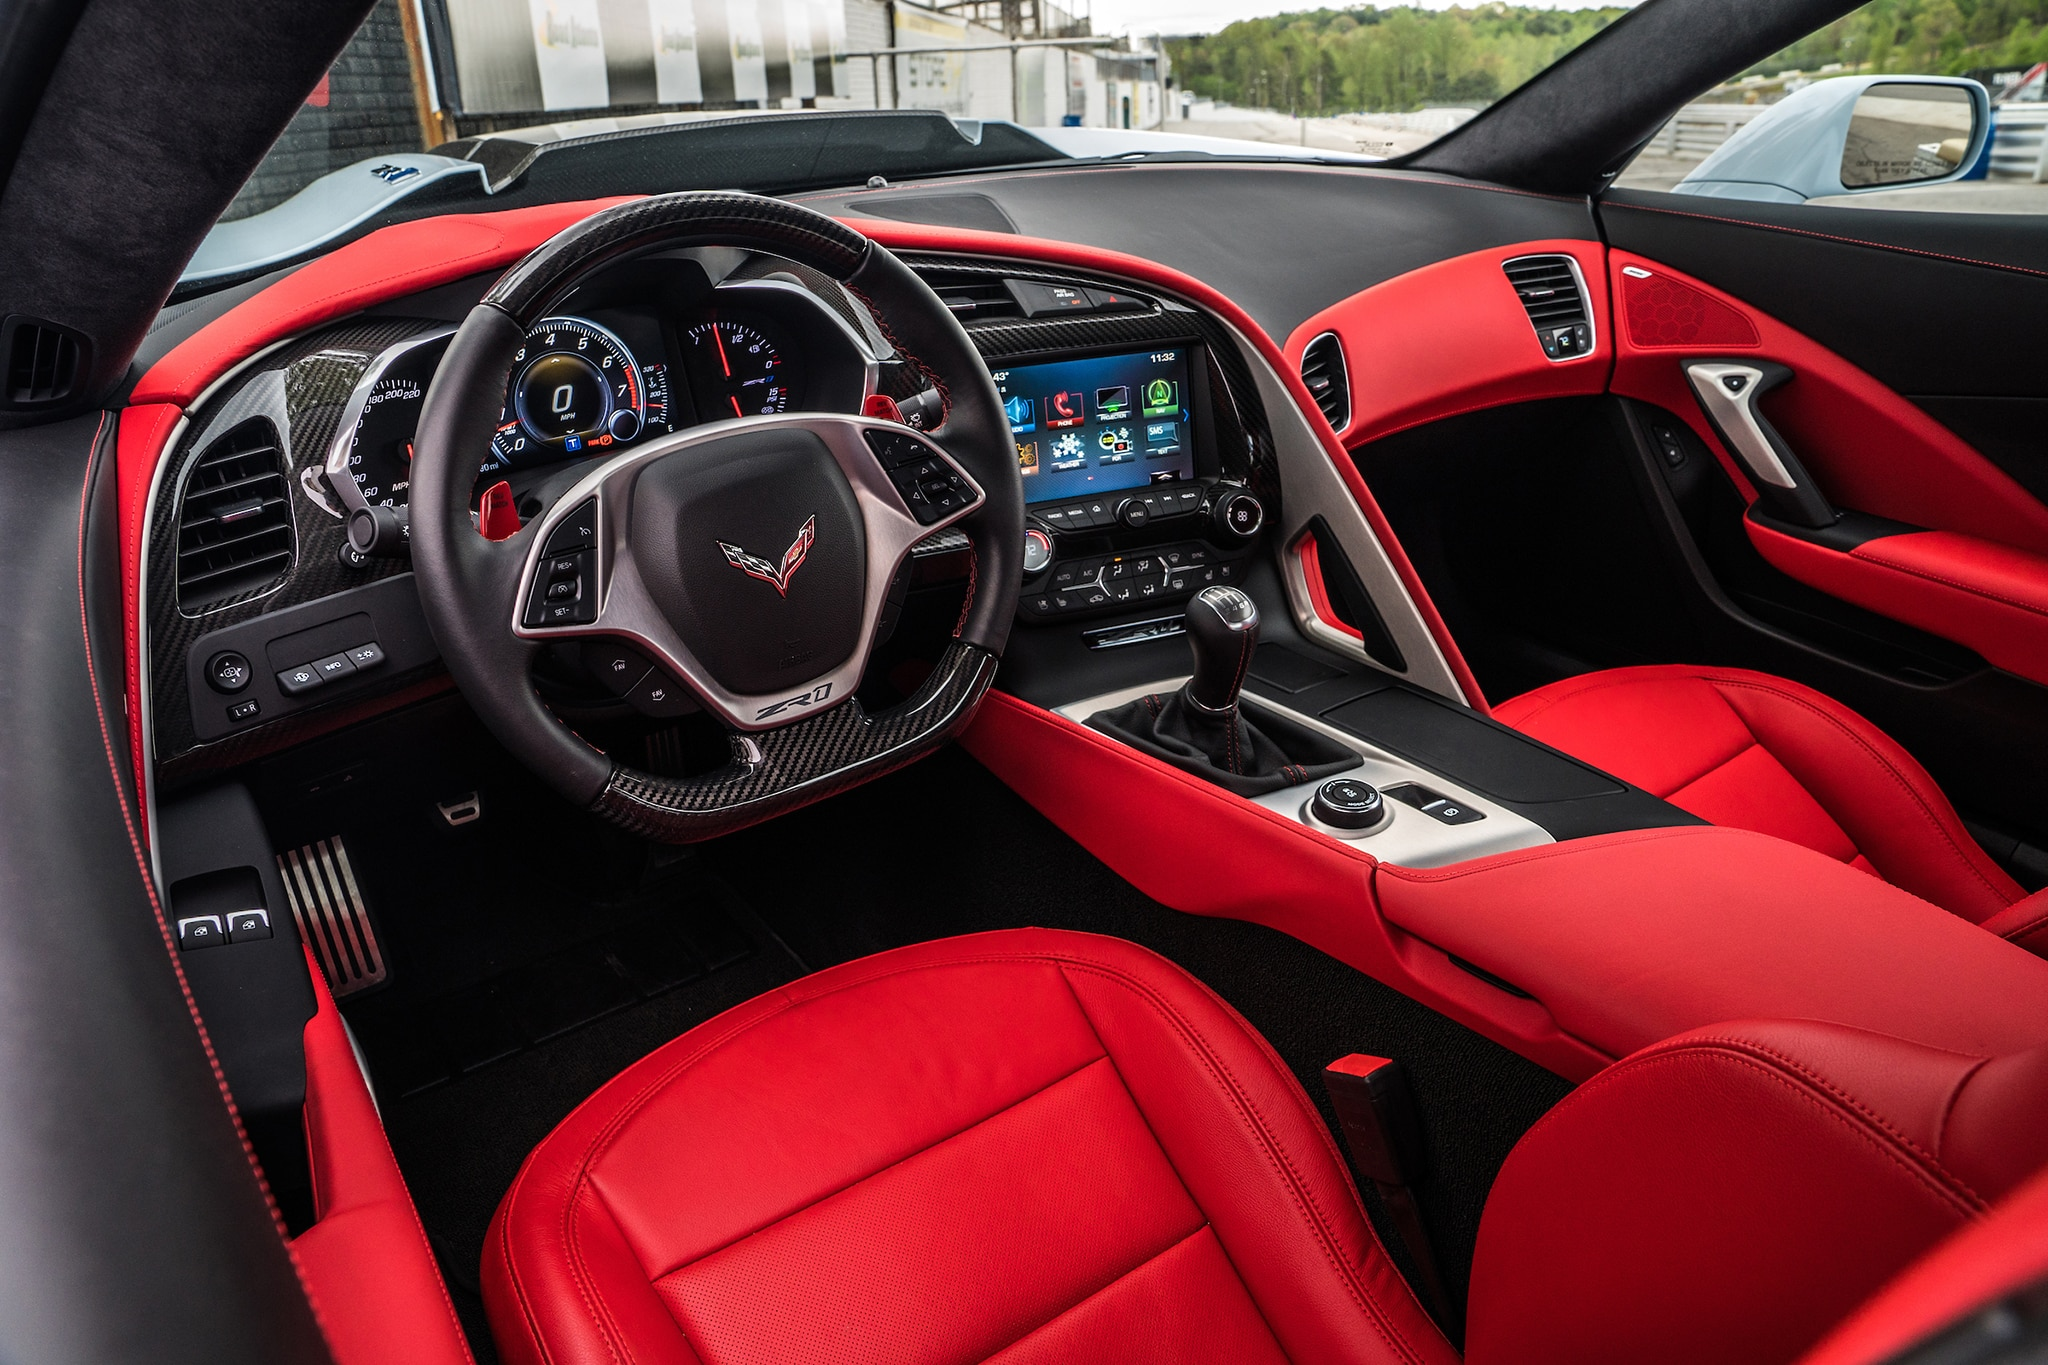 90 Chevy Corvette Ac Wiring Diagram Electrical Circuit 2019 Chevrolet Zr1 First Drive Automobile Magazinerhautomobilemag At